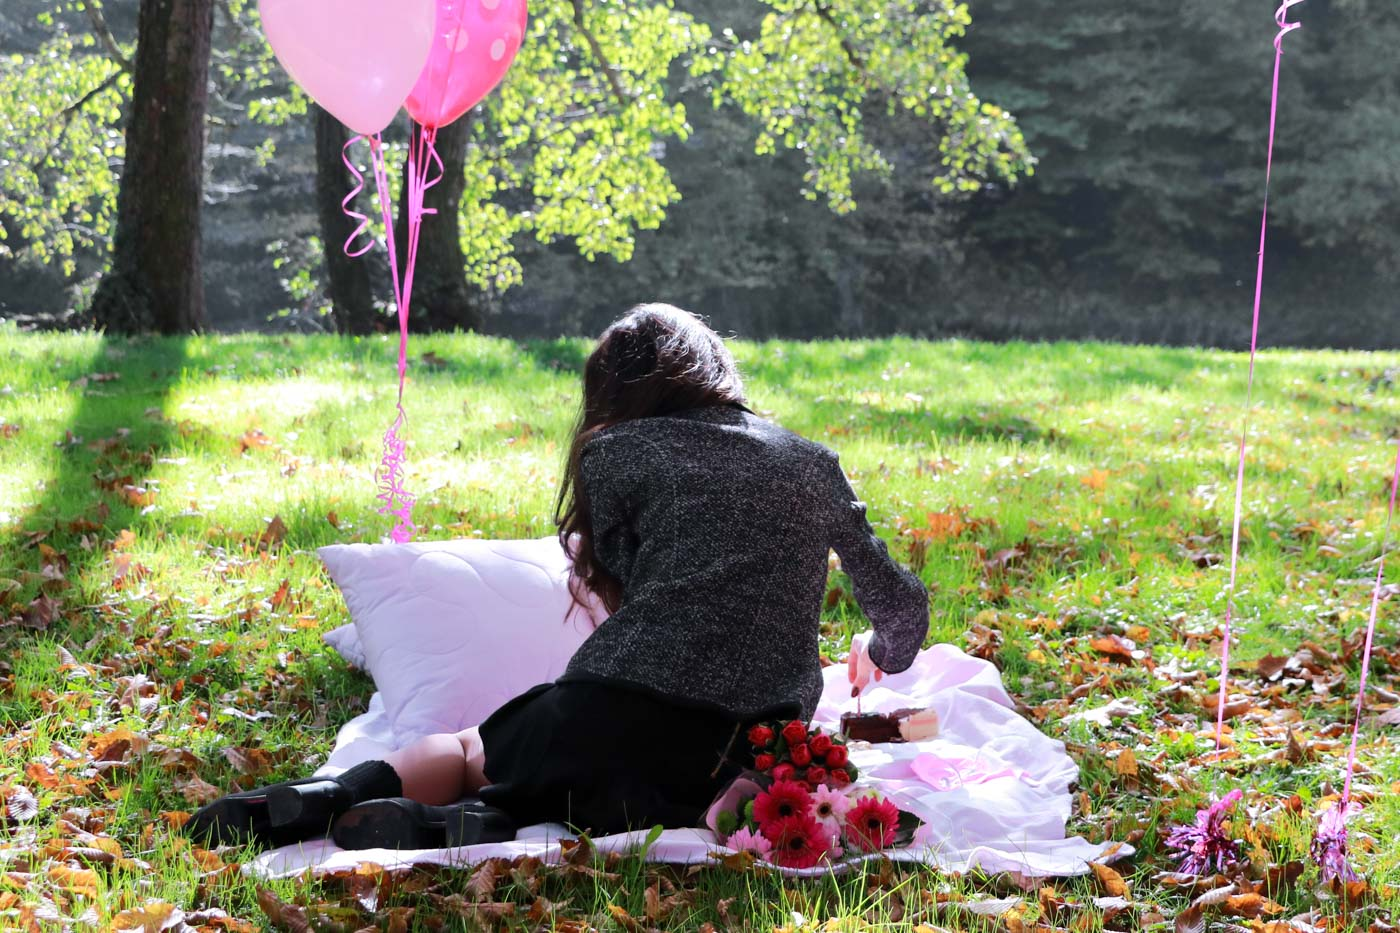 Fashion Blogger Veronika Lipar of Brunette from Wall Street celebrating her birthday on an autumnal picnic